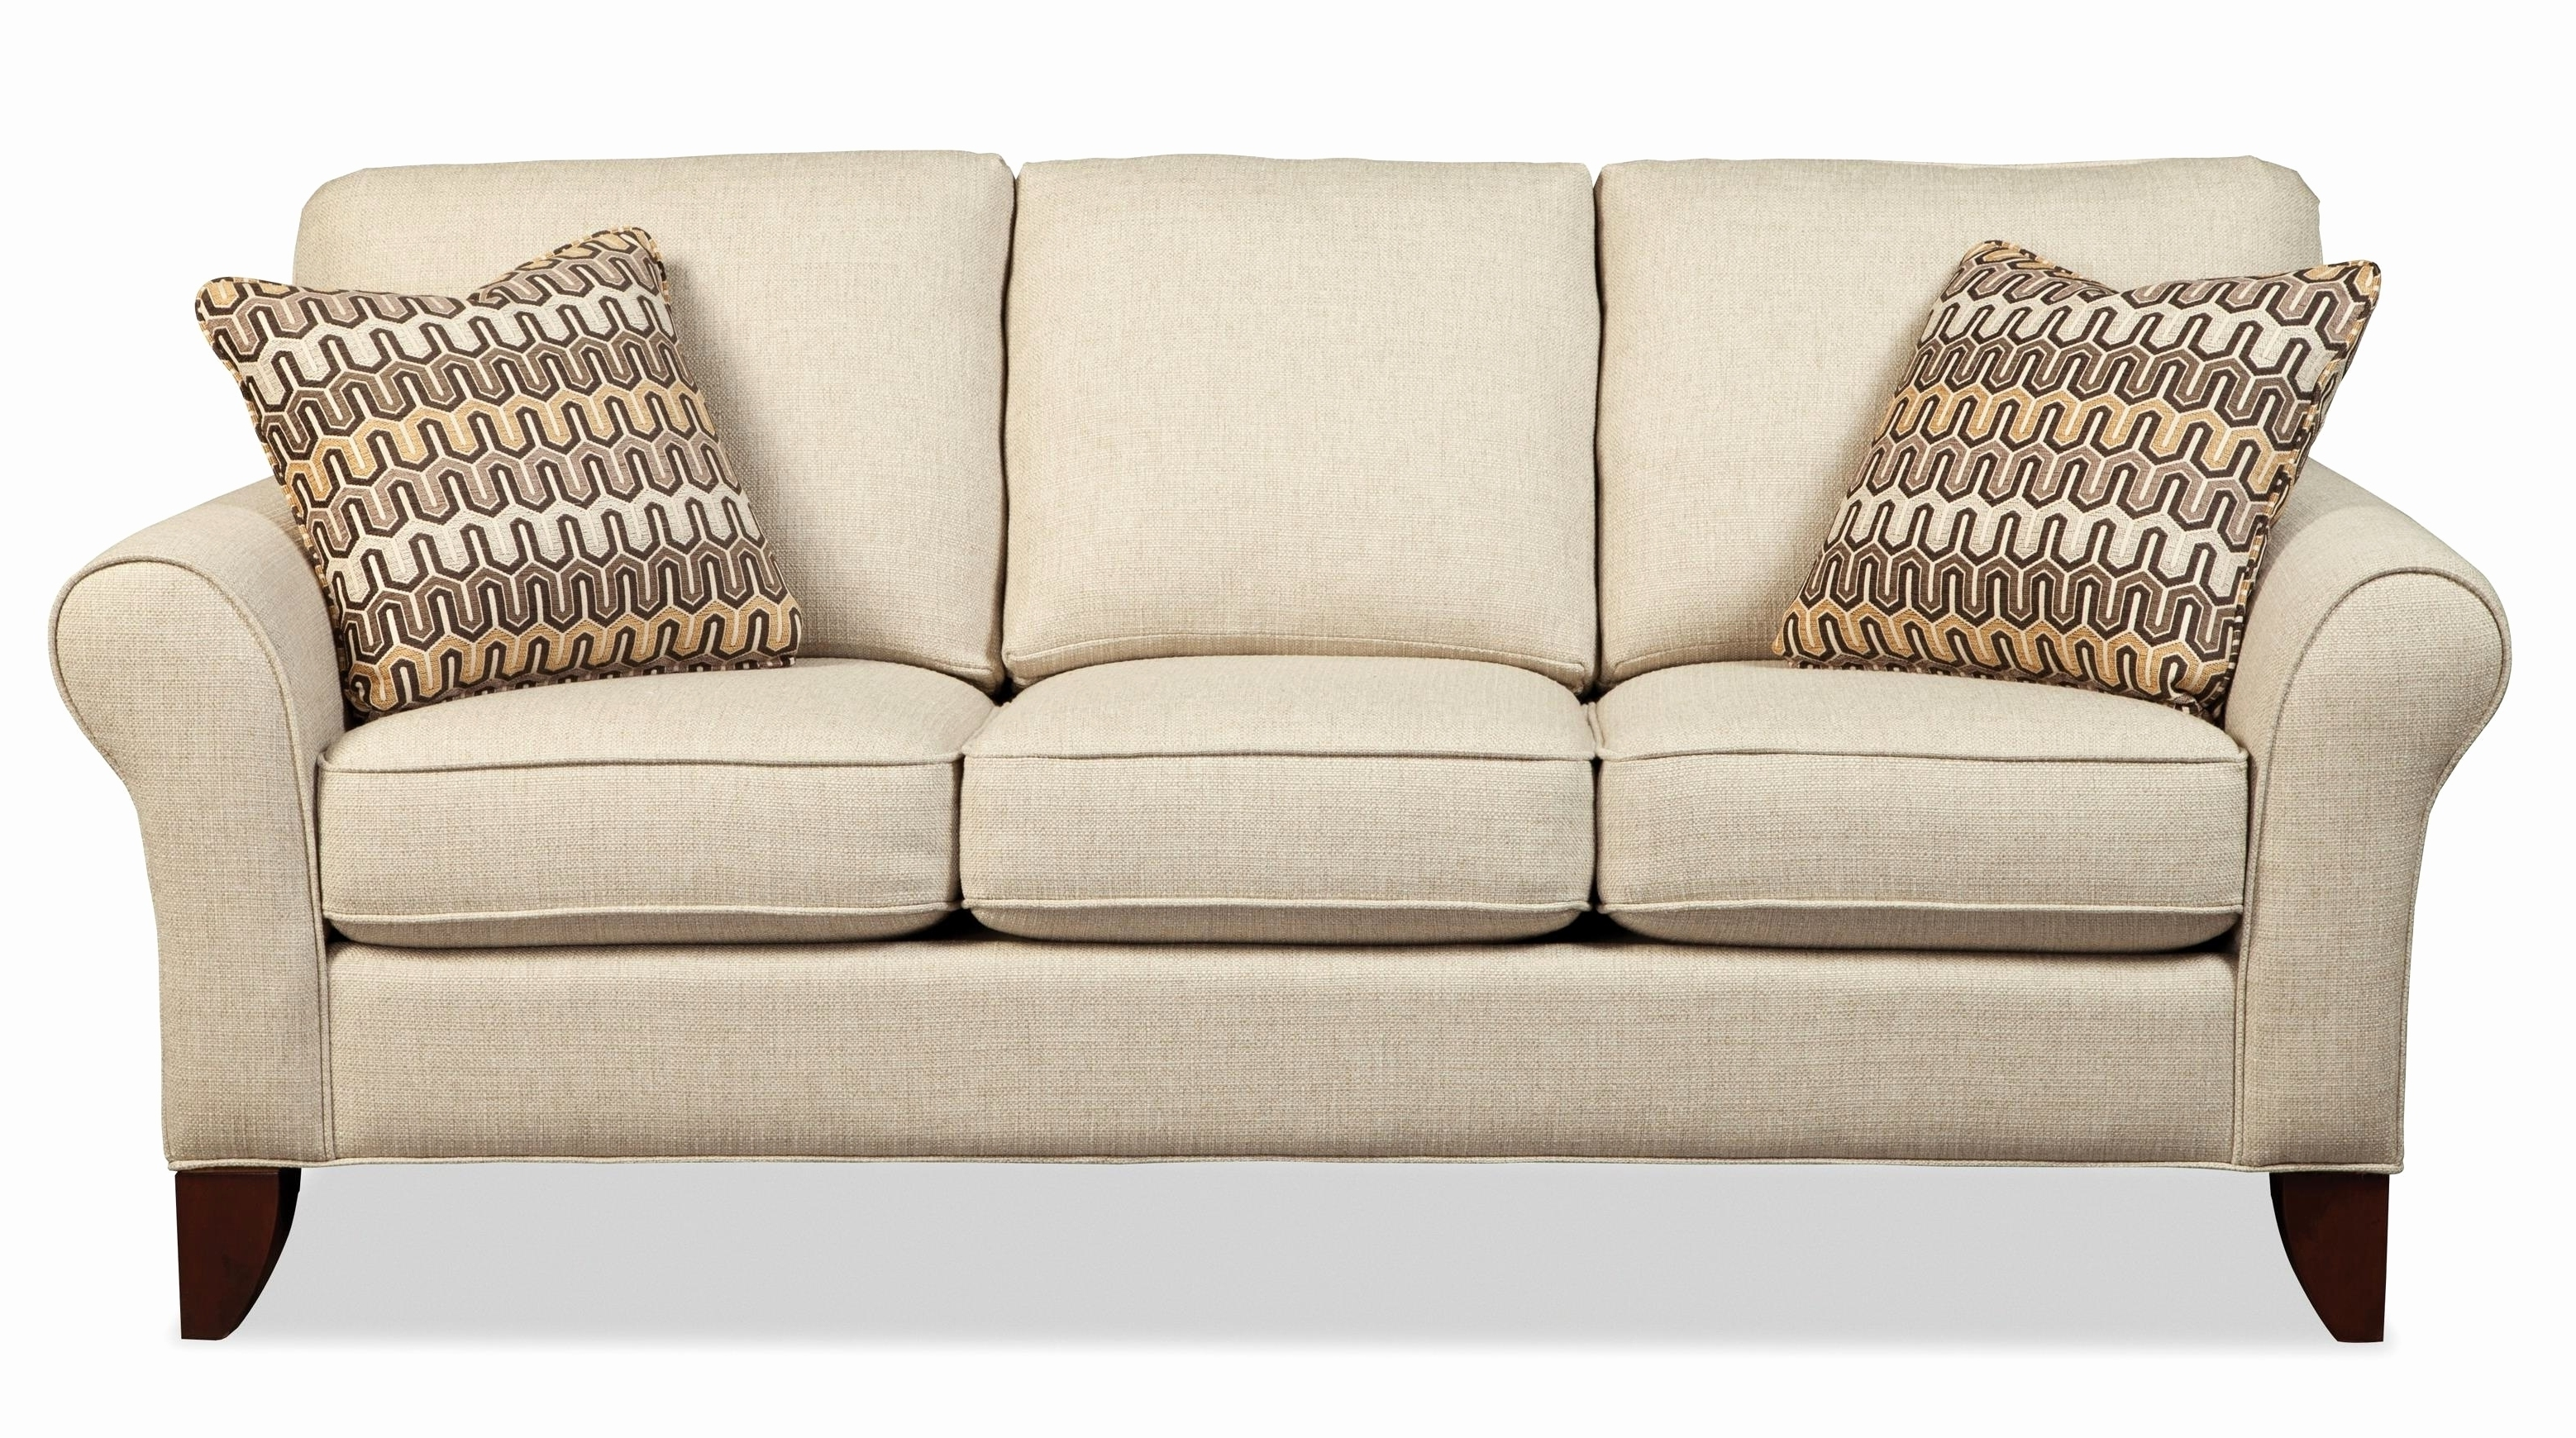 Lovely Small Scale Leather Sofa 2018 – Couches And Sofas Ideas In Most Recently Released Small Scale Sofas (View 4 of 15)